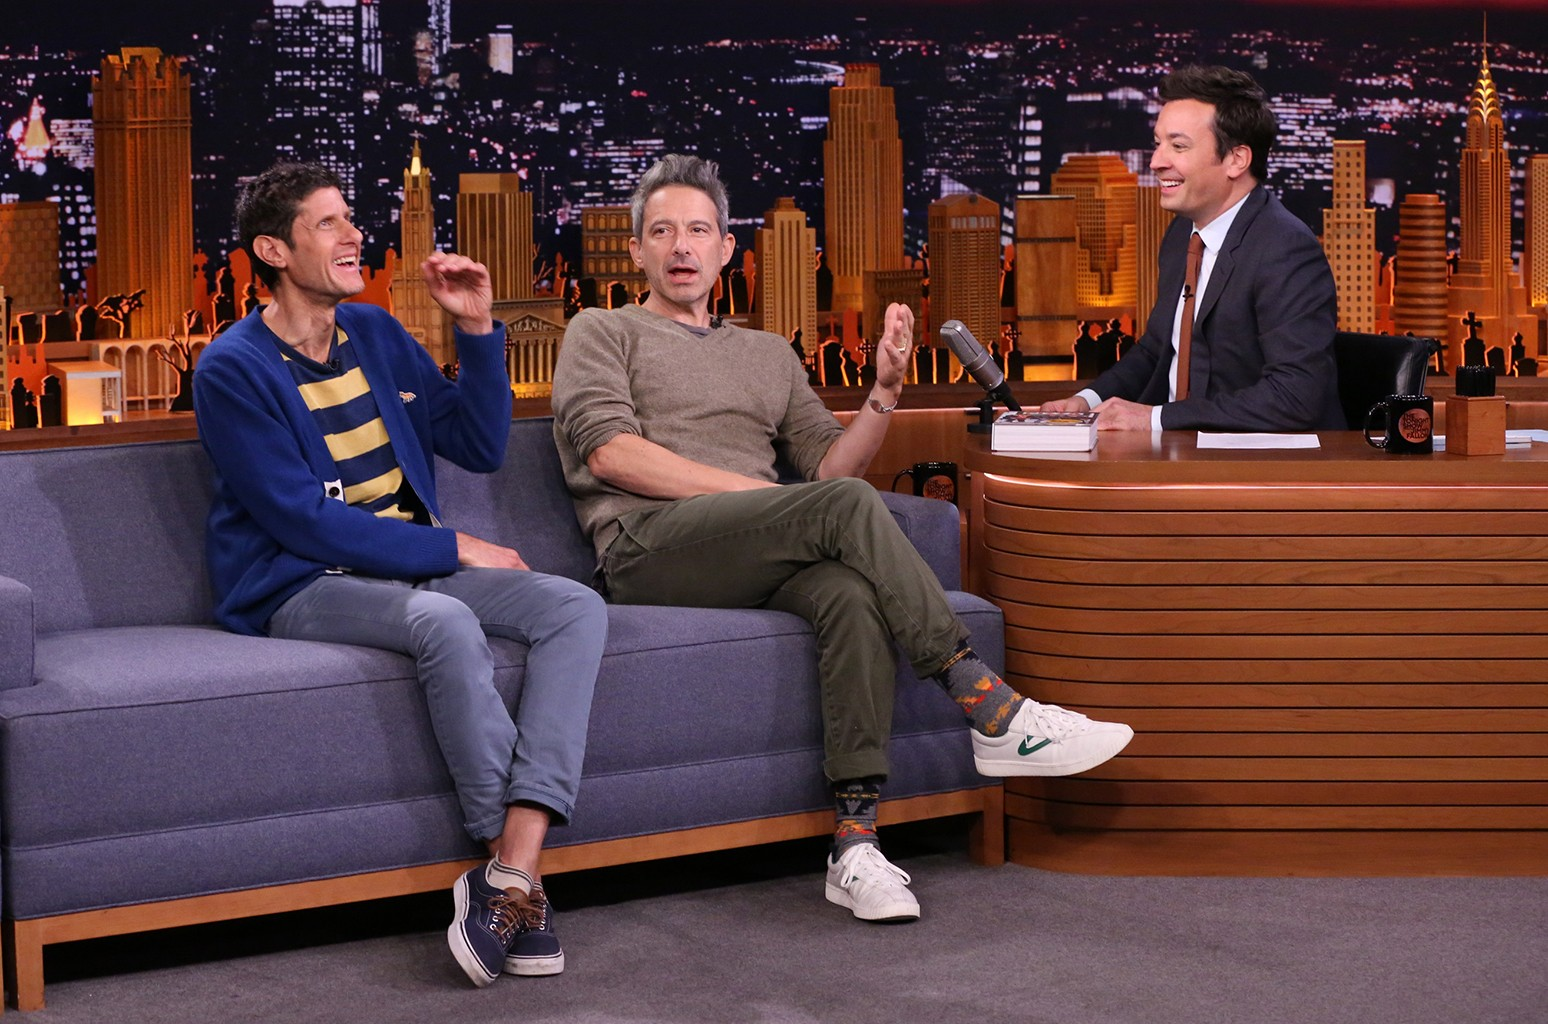 Mike D and Adrock